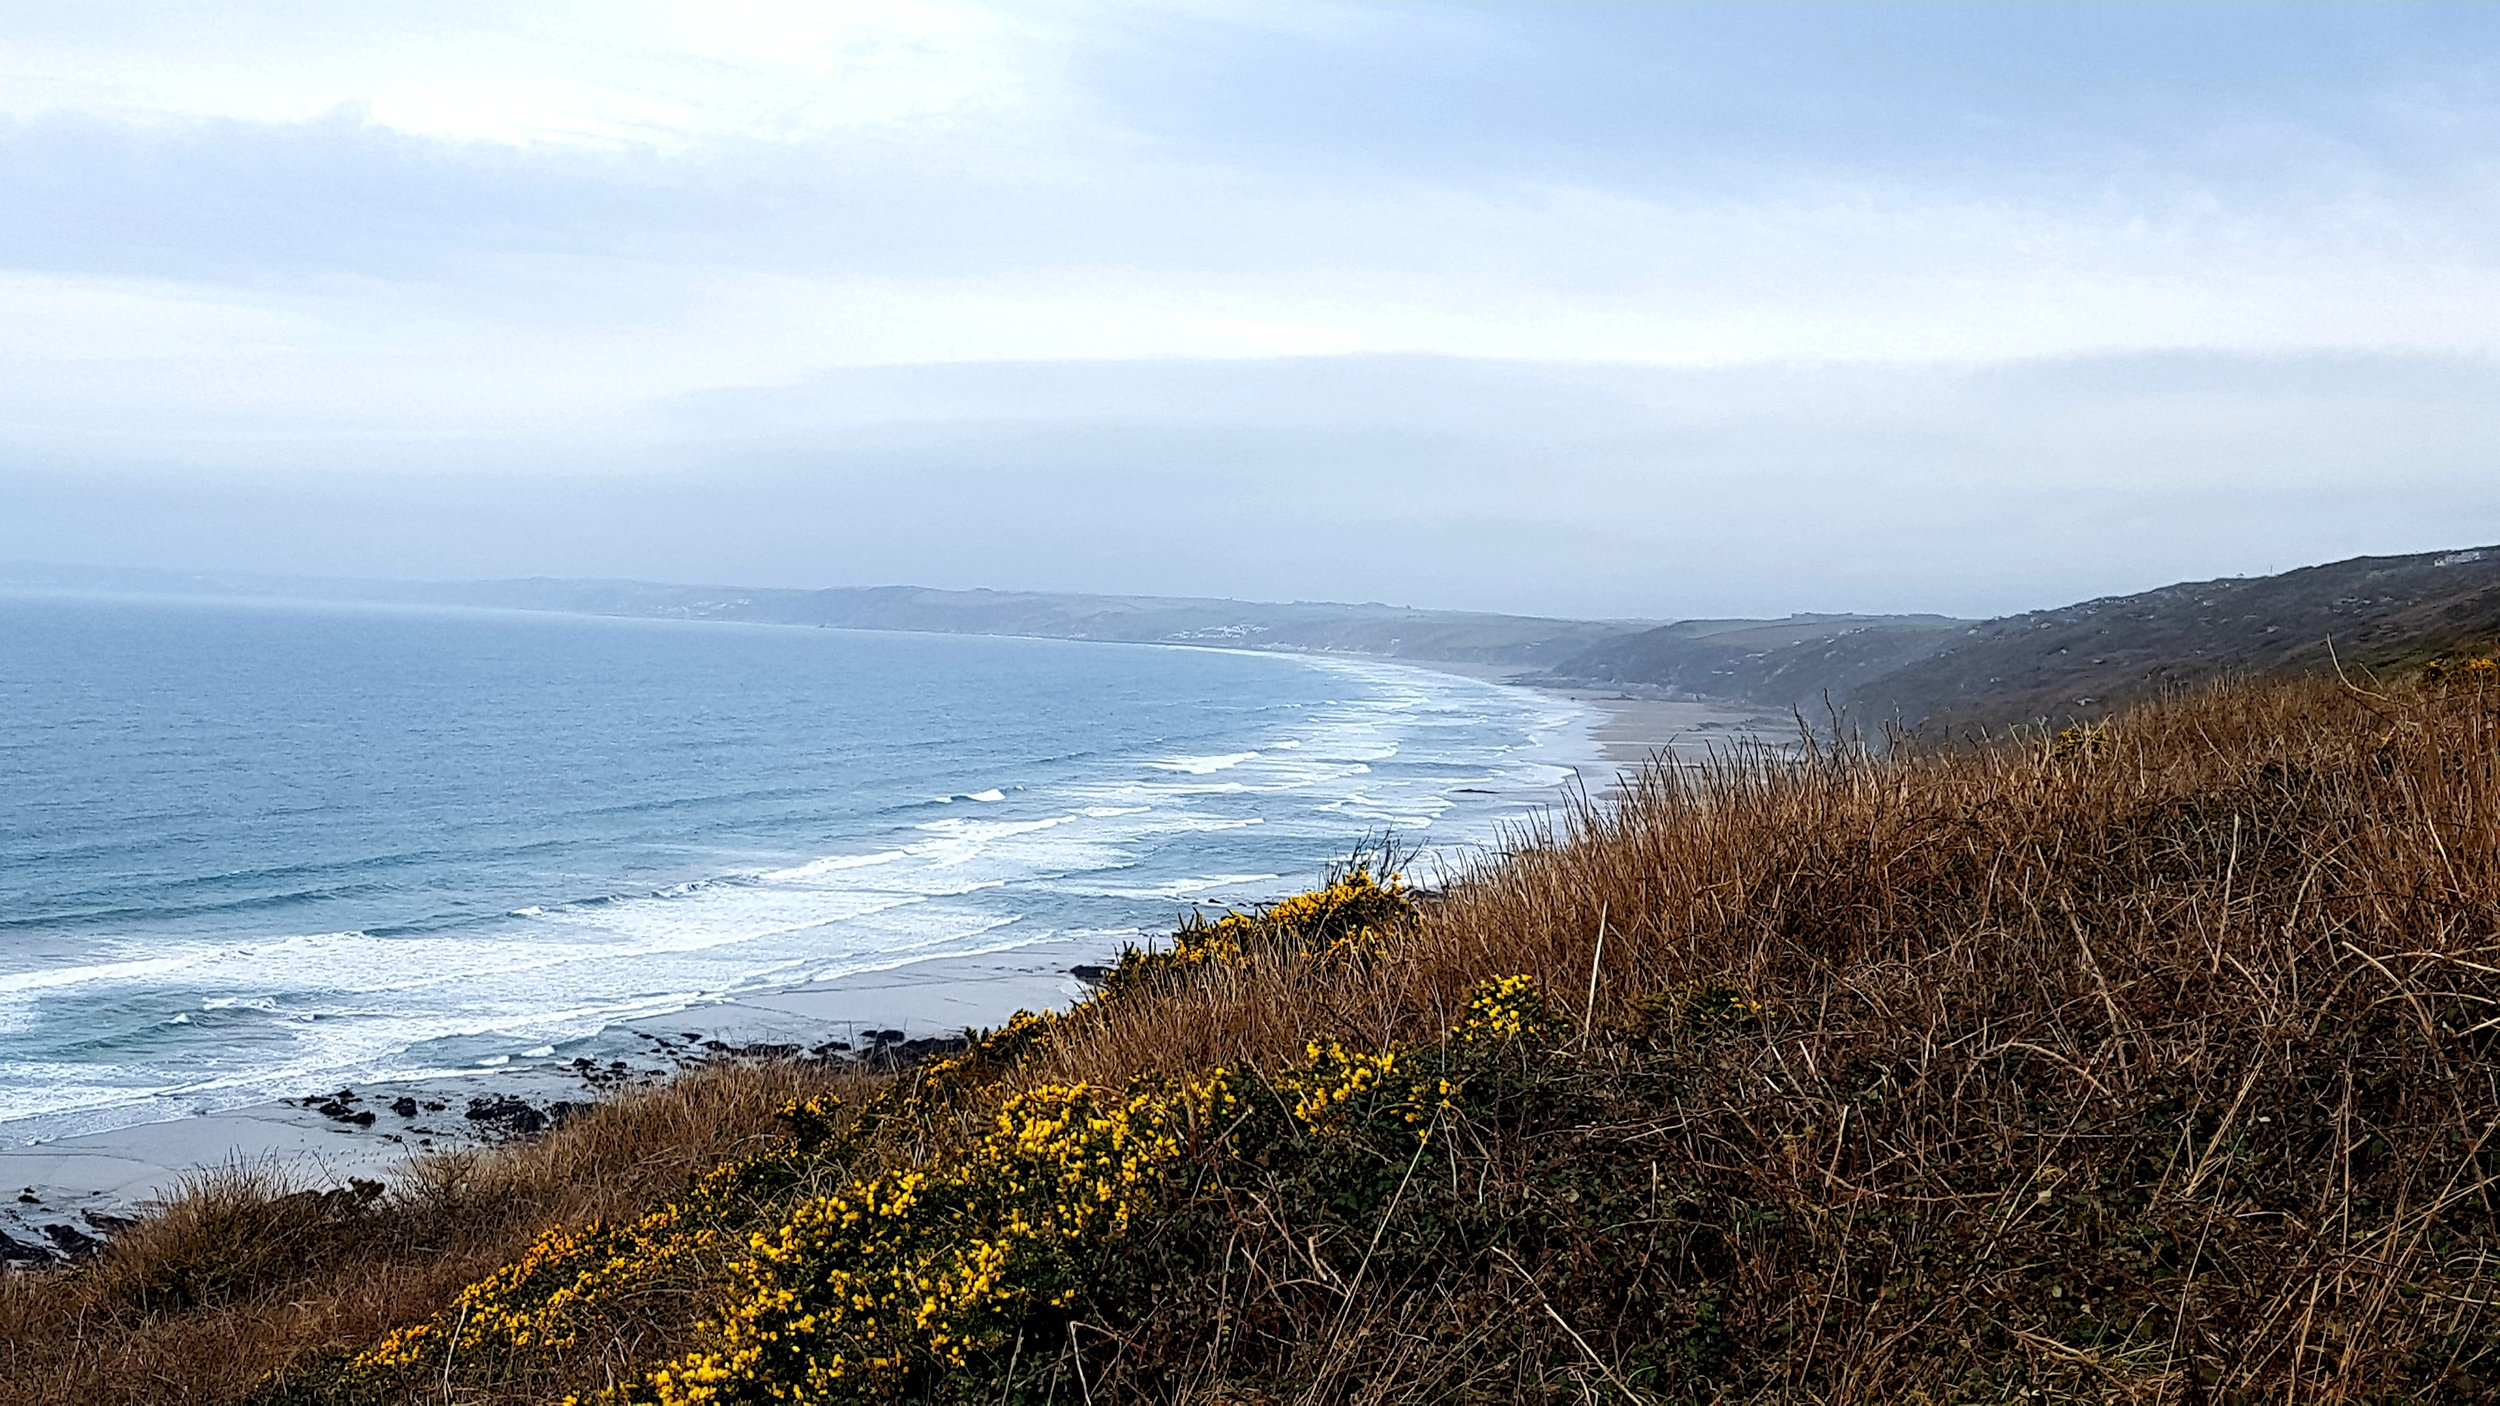 The Looe to Cremyll Cycle Trail links Rame Head with Looe along the dramatic sweep of Whitsand Bay